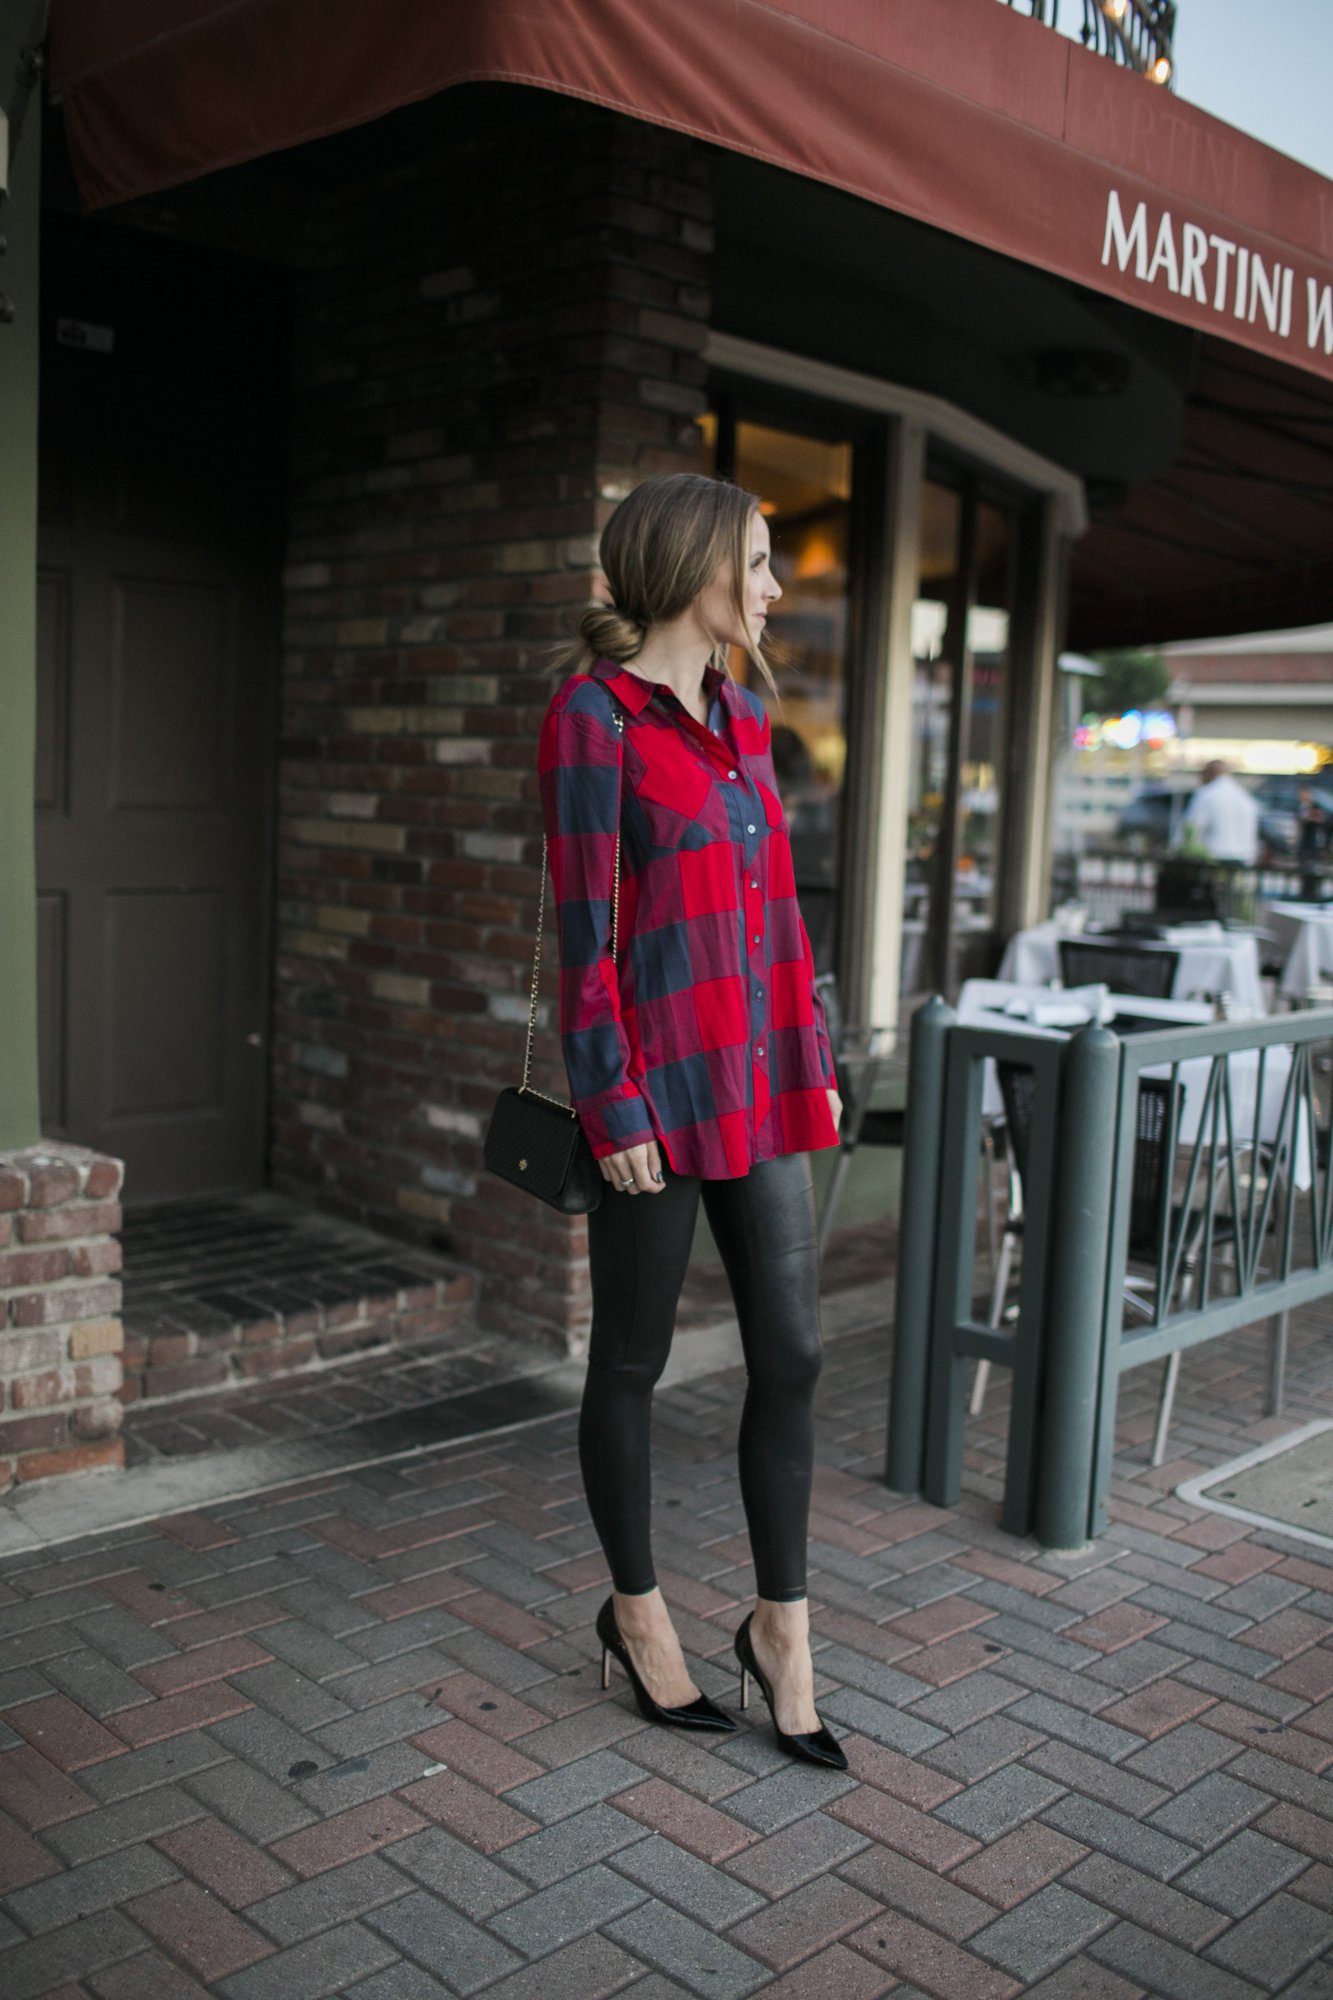 try your leather leggings for date night!